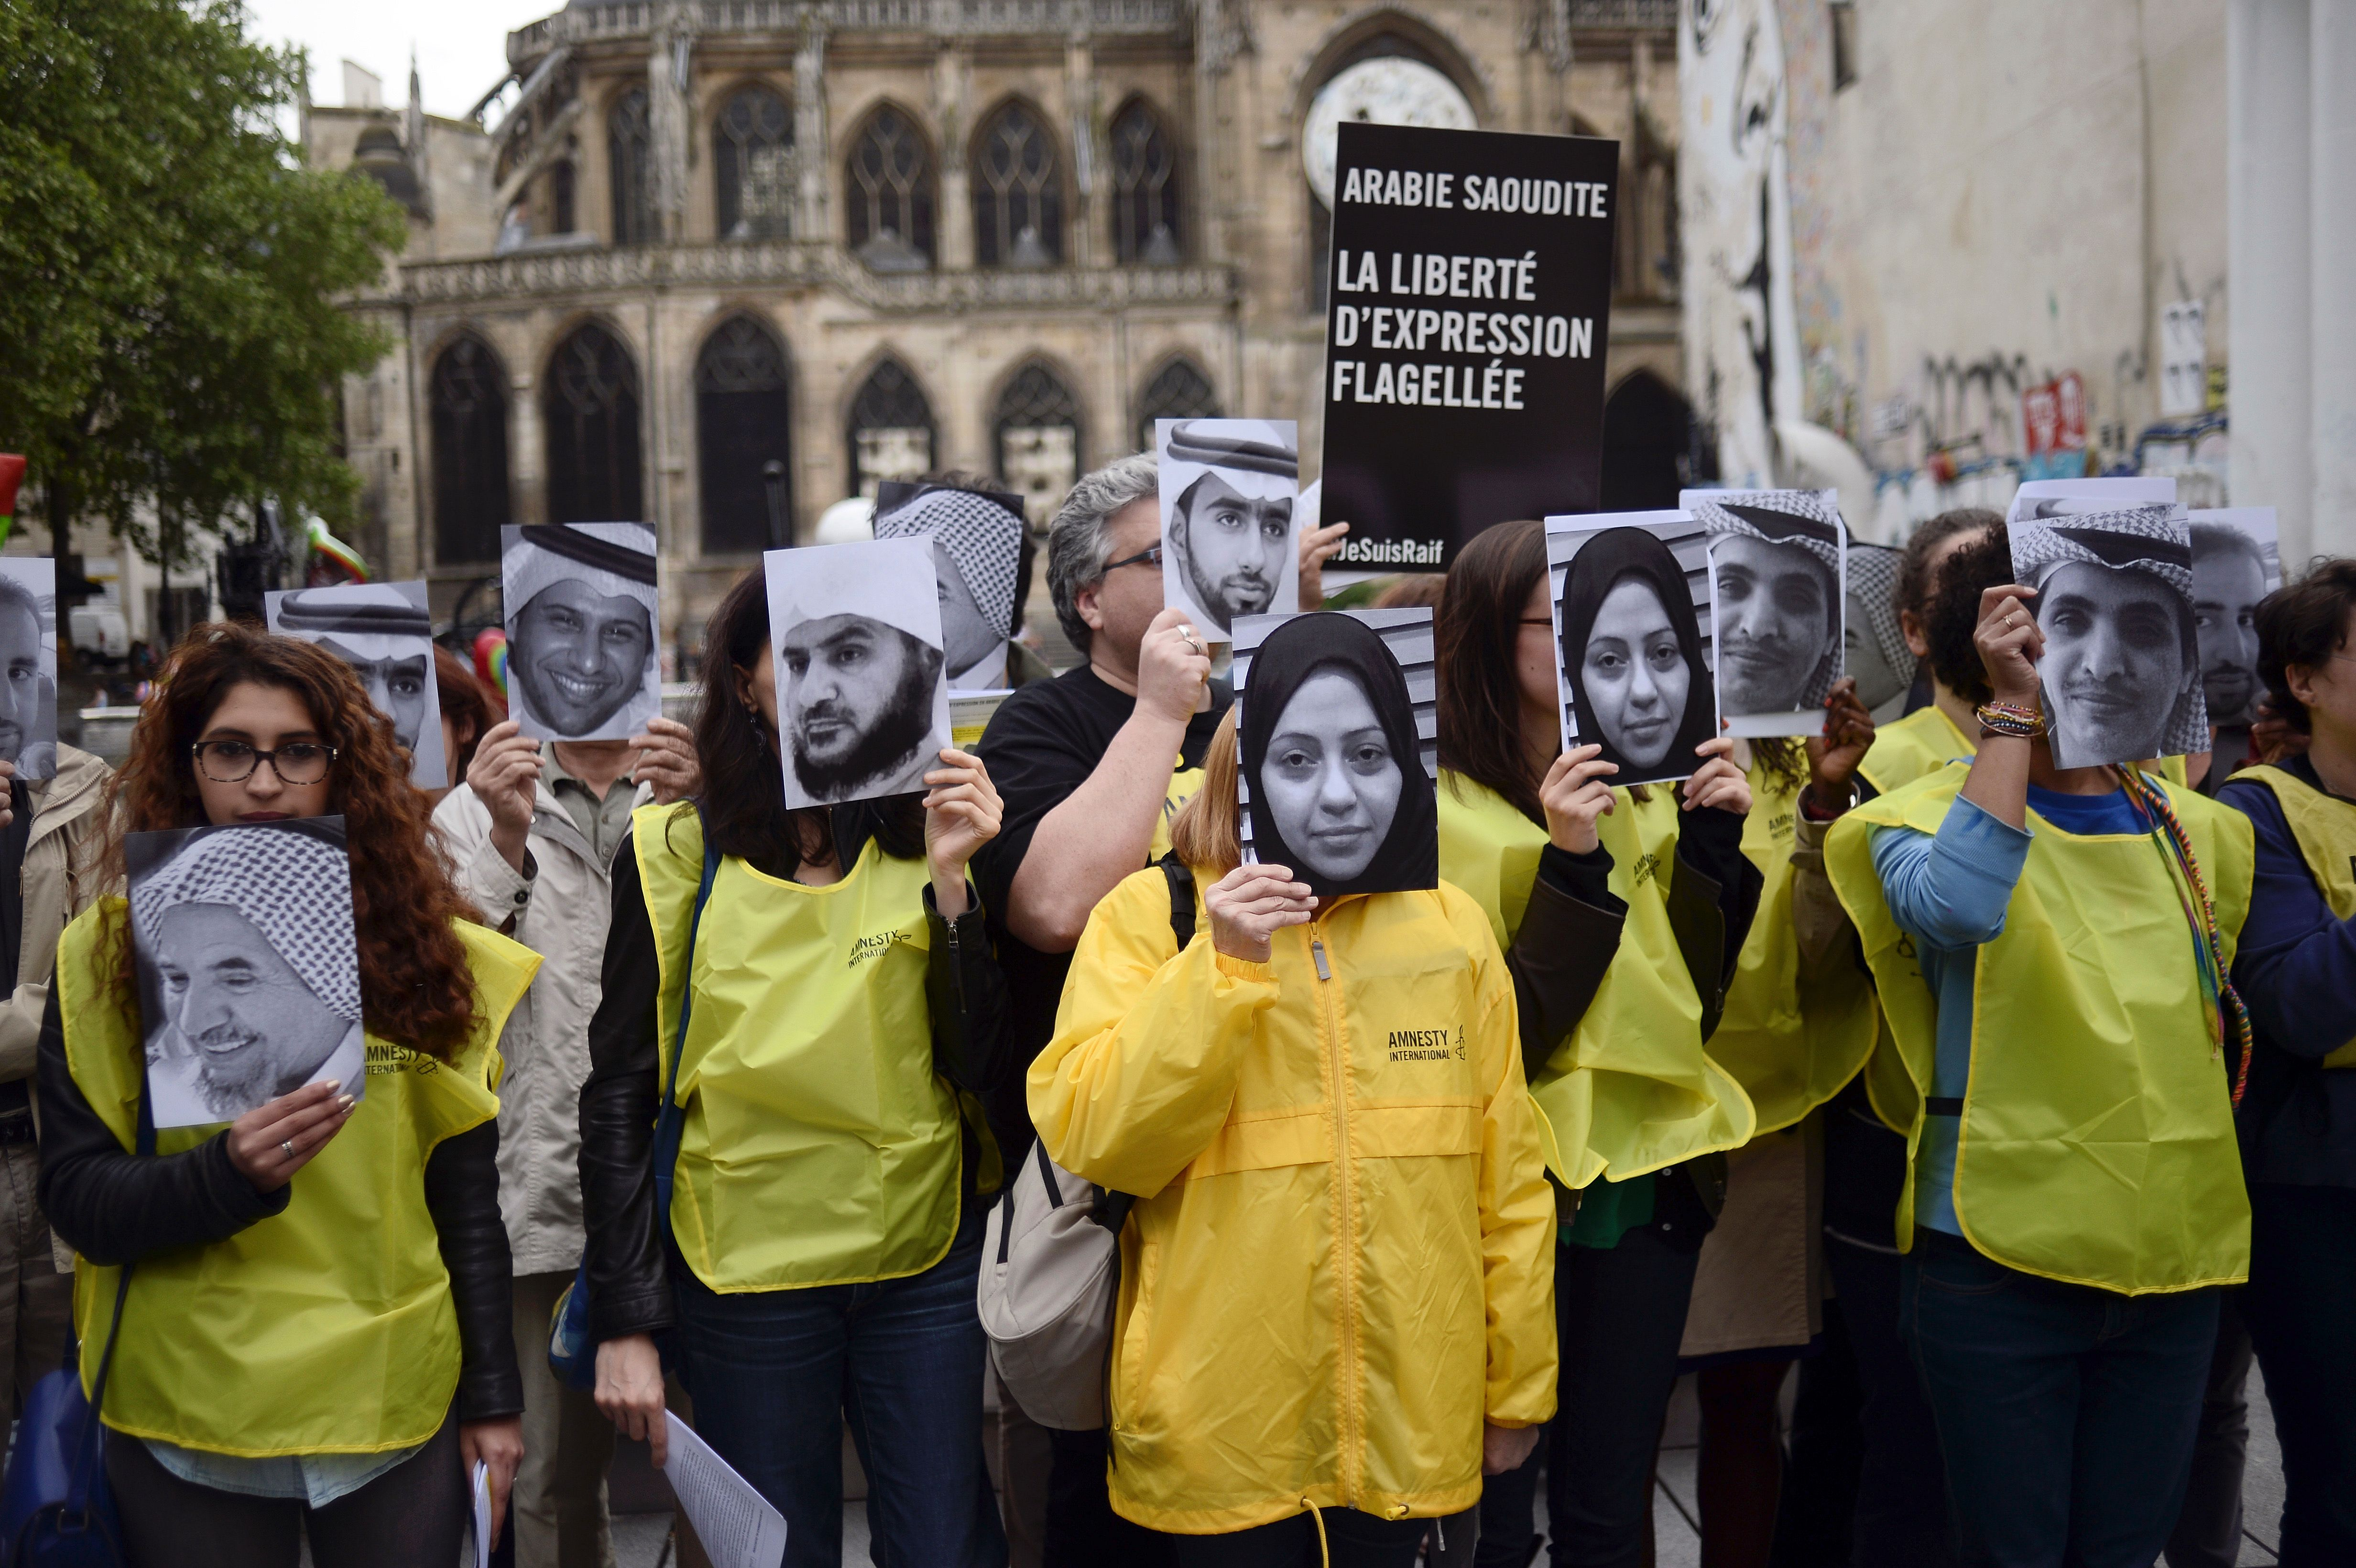 People hold pictures of Samar Badawi and her brother jailed Saudi blogger Raif Badawi, who was sentenced to 1,000 lashes for  insulting Islam, on May 7, 2015 in Paris, France.